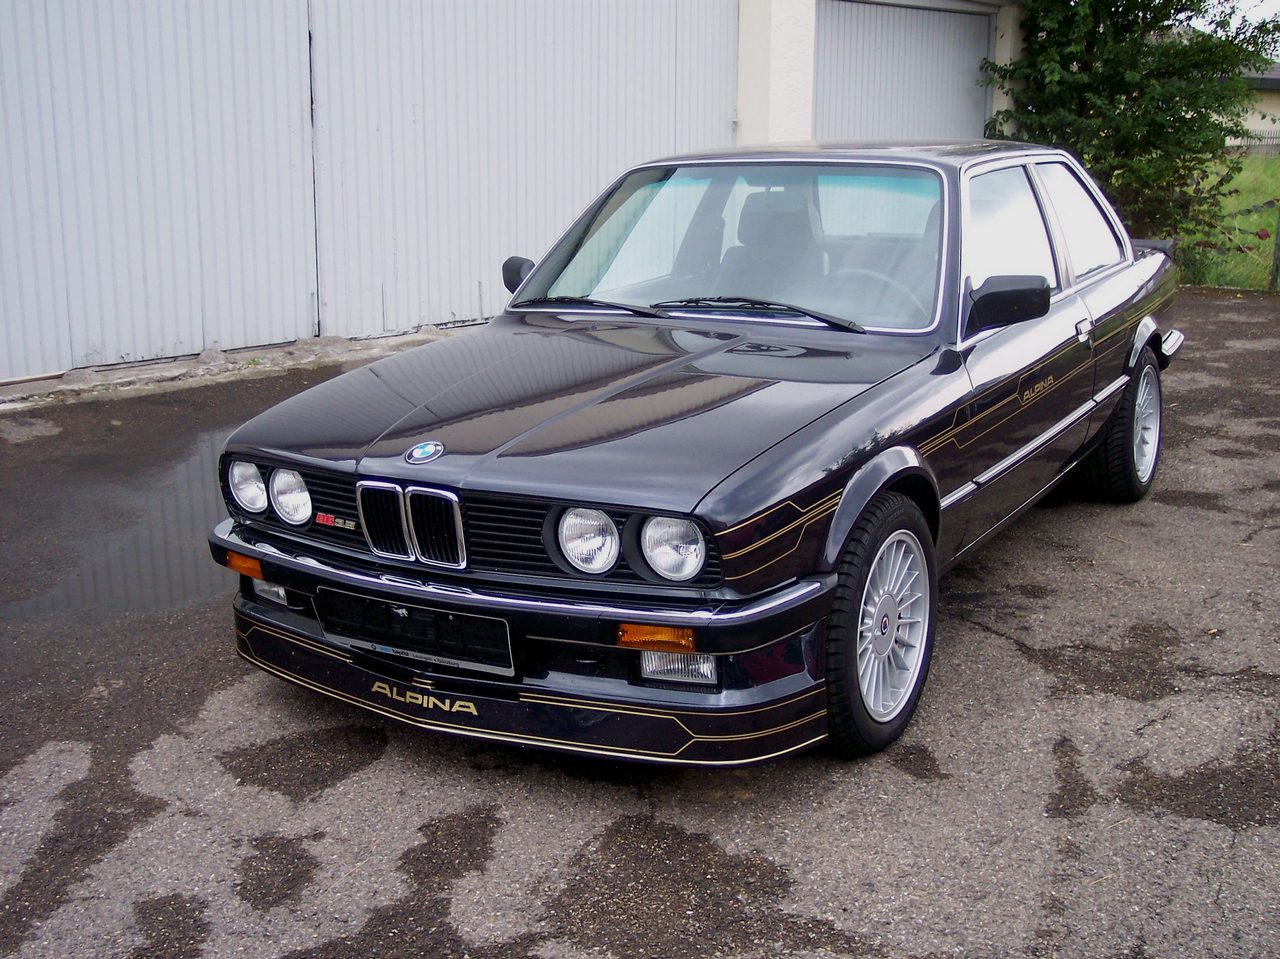 bmw 323i 1990 review amazing pictures and images look at the car. Black Bedroom Furniture Sets. Home Design Ideas